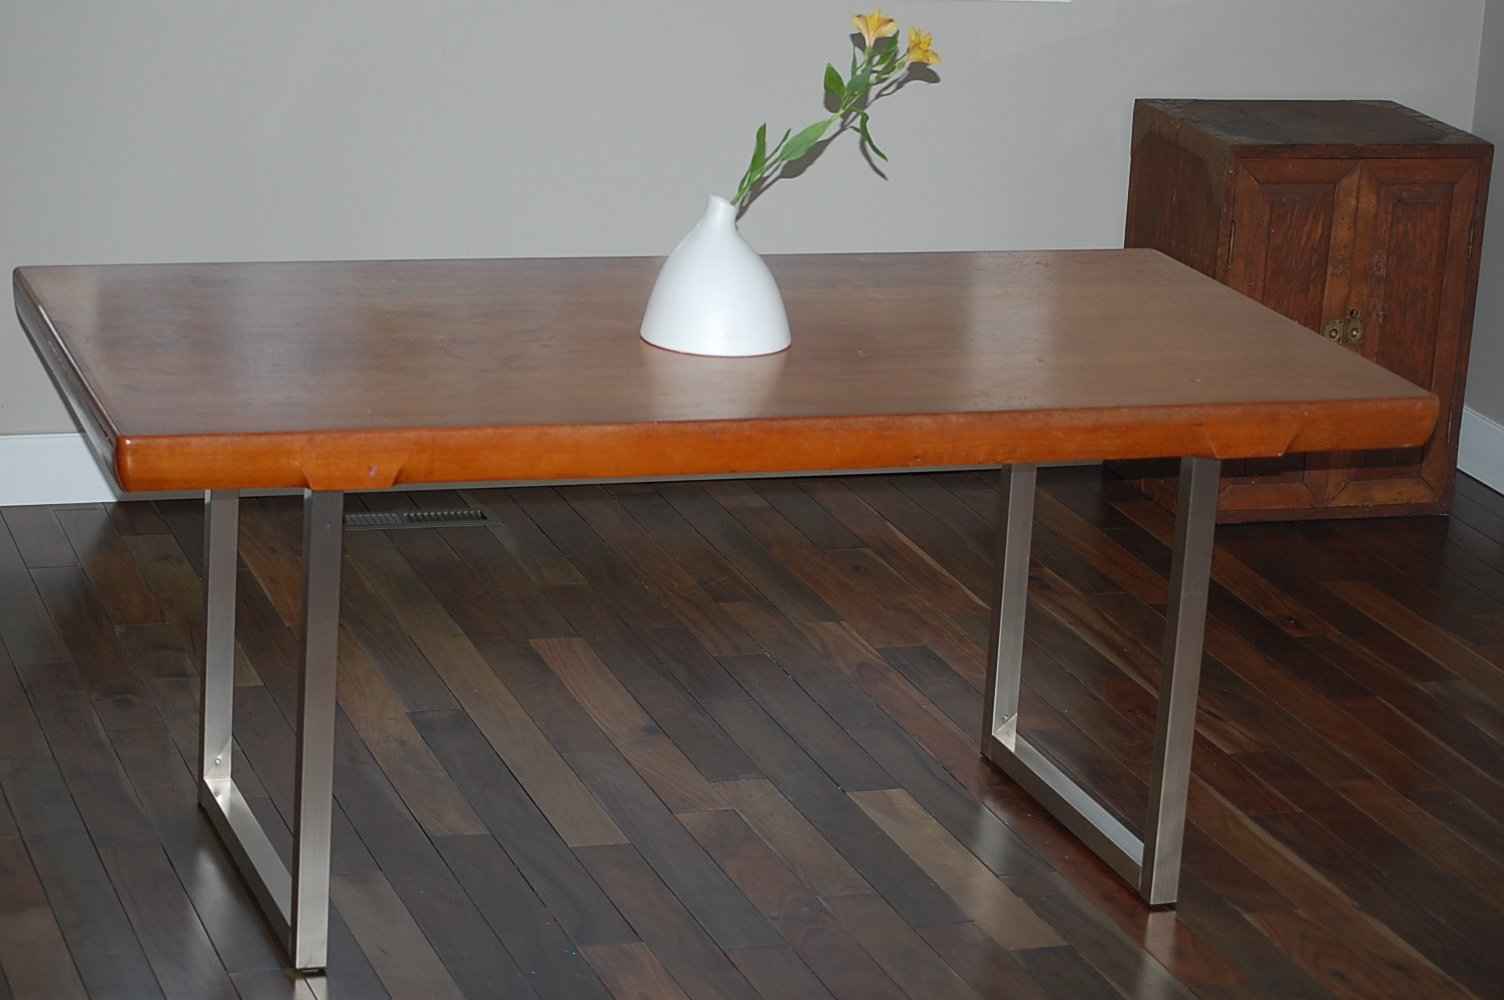 A Sad Old And Tired Table Gets A Second Wind Thanks To Vika Moliden IKE